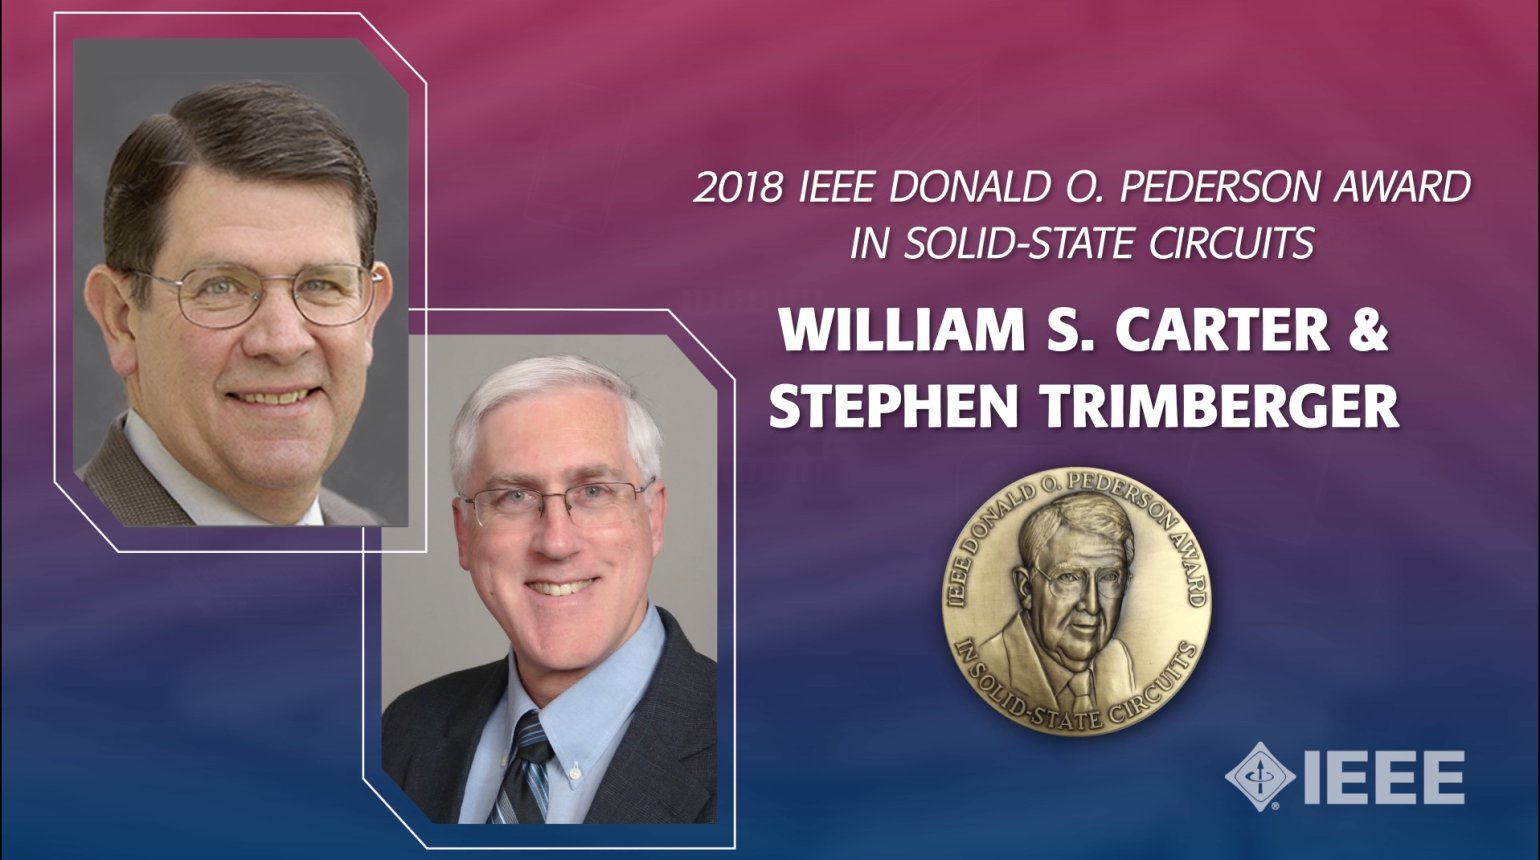 William S. Carter and Stephen Trimberger - 2018 Donald O. Pederson Award in Solid-State Circuits at IEEE ISSCC